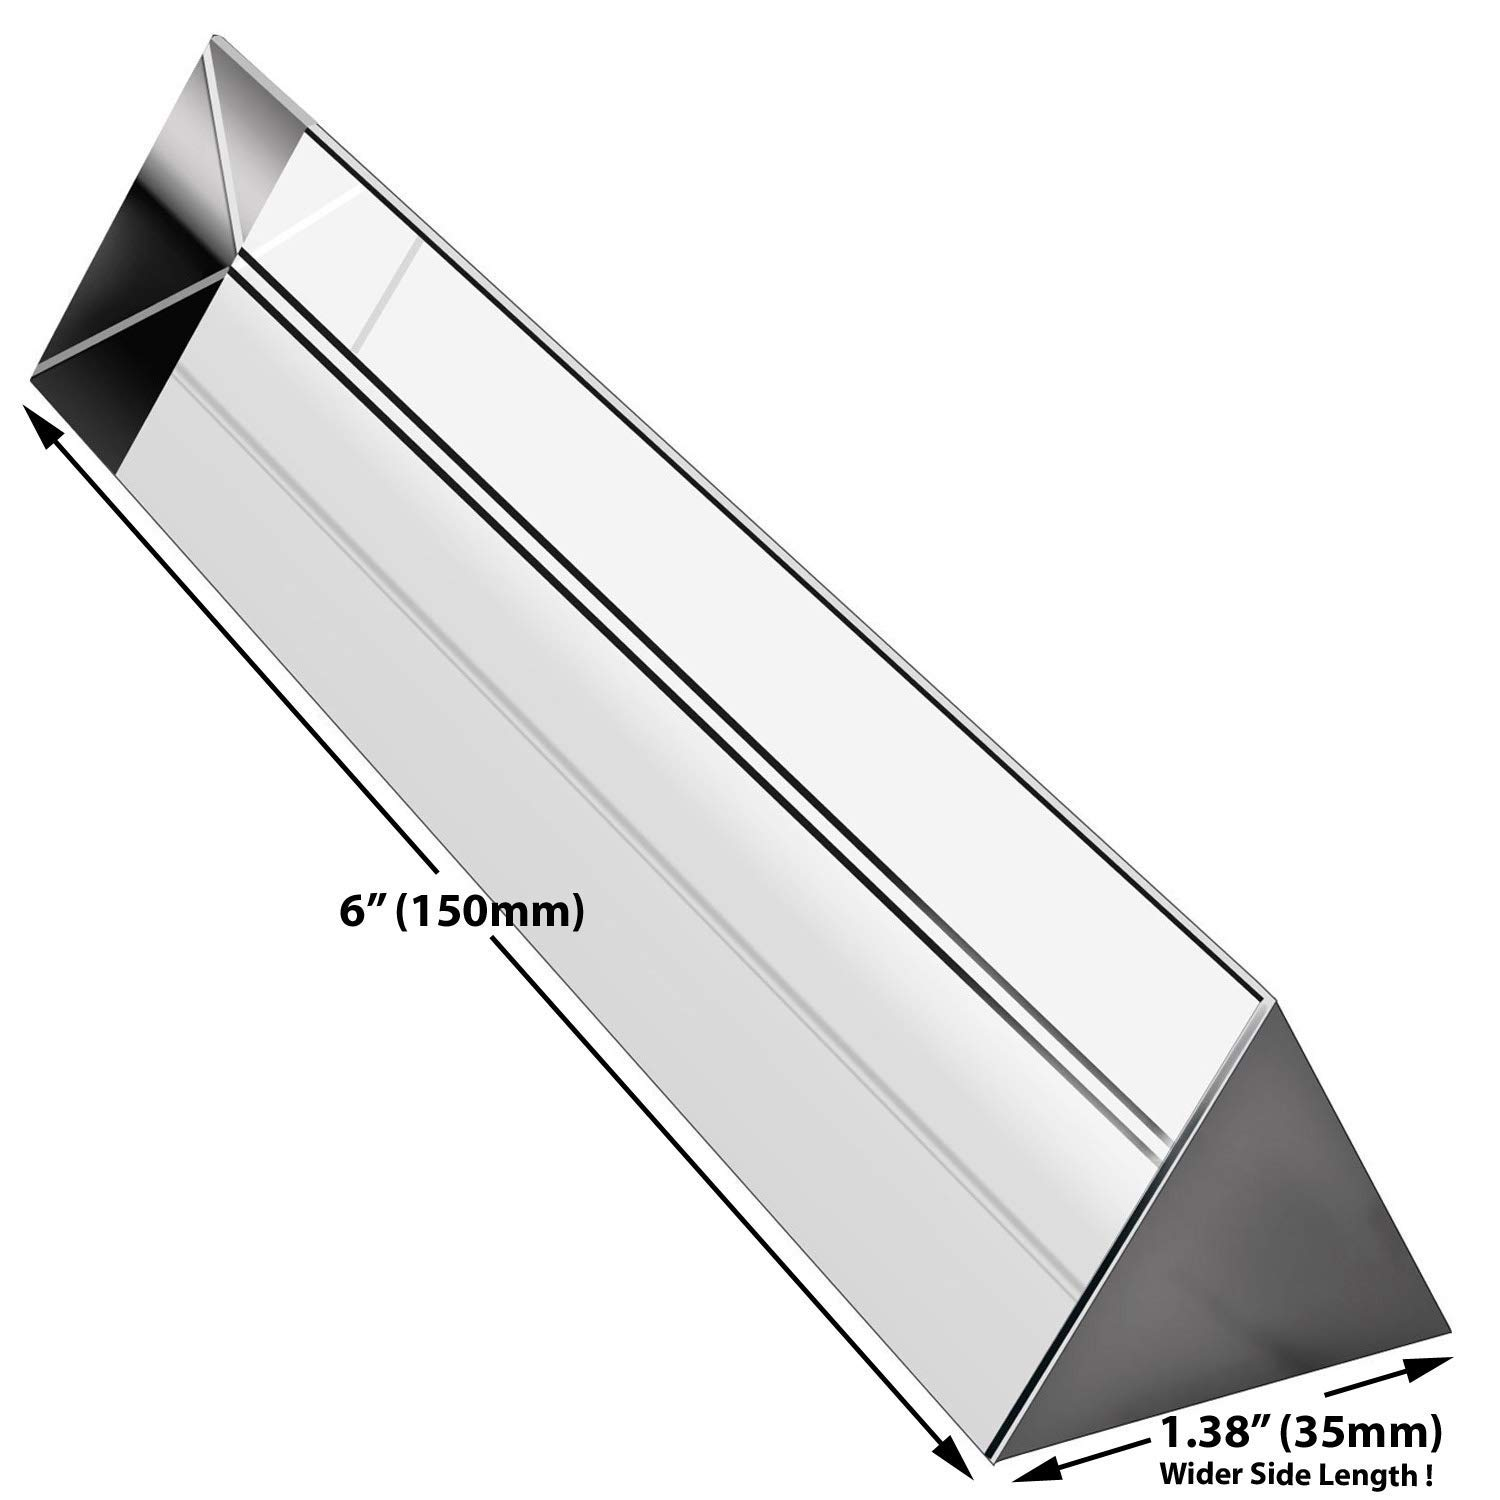 150mm Crystal 6 Optical Glass Triangular Prism for Teaching Light Spectrum Physics and Photo Photography Prism